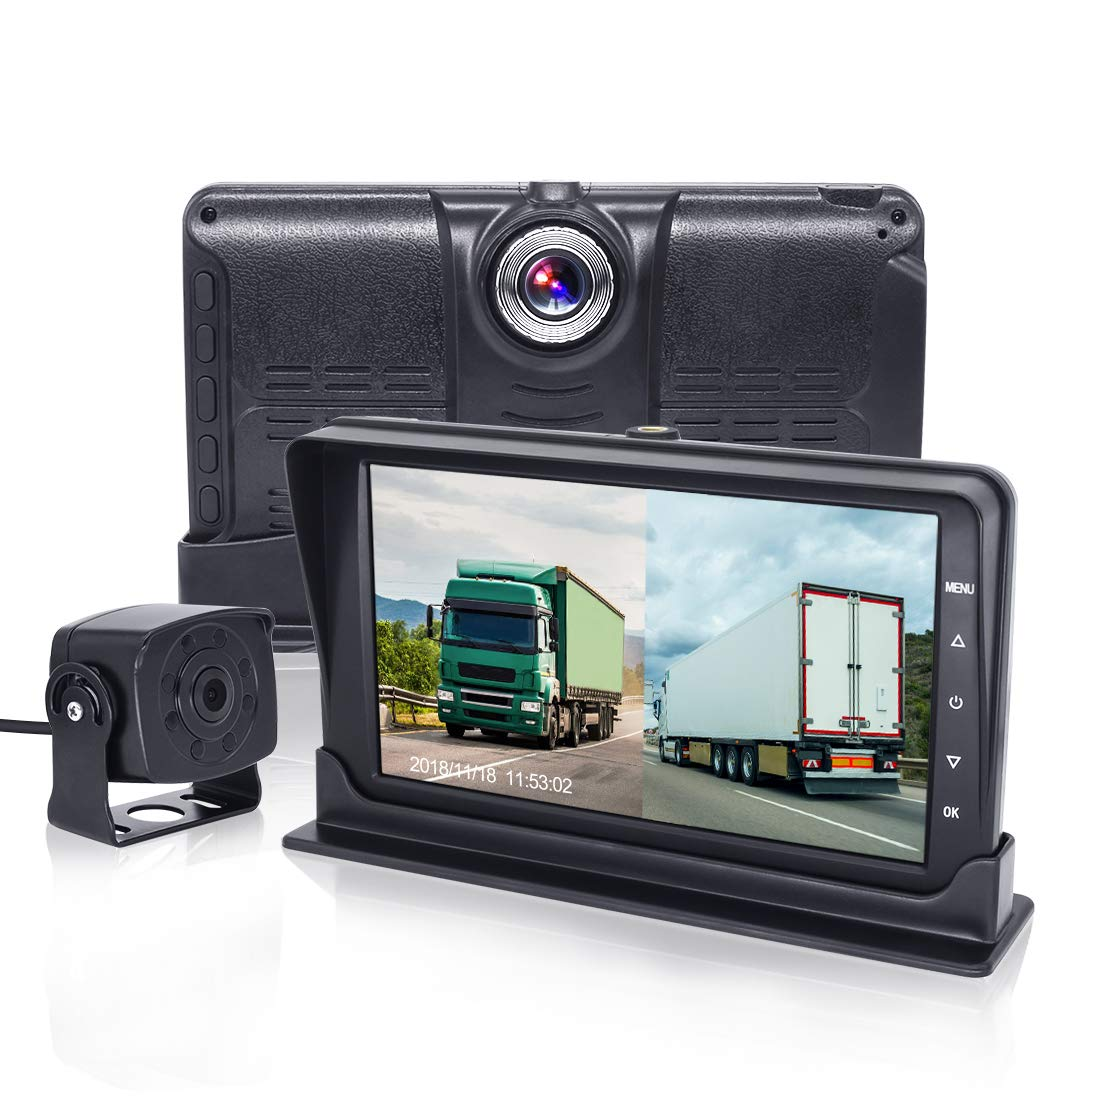 Loop Recording,Motion Detection SVTCAM JLY-01 Dual Channel Car Dash Cam 170/° Wide Angle 1080P Front Car Monitor Recorder with AHD 720P Rear View Backup Camera,Built-in G-Sensor